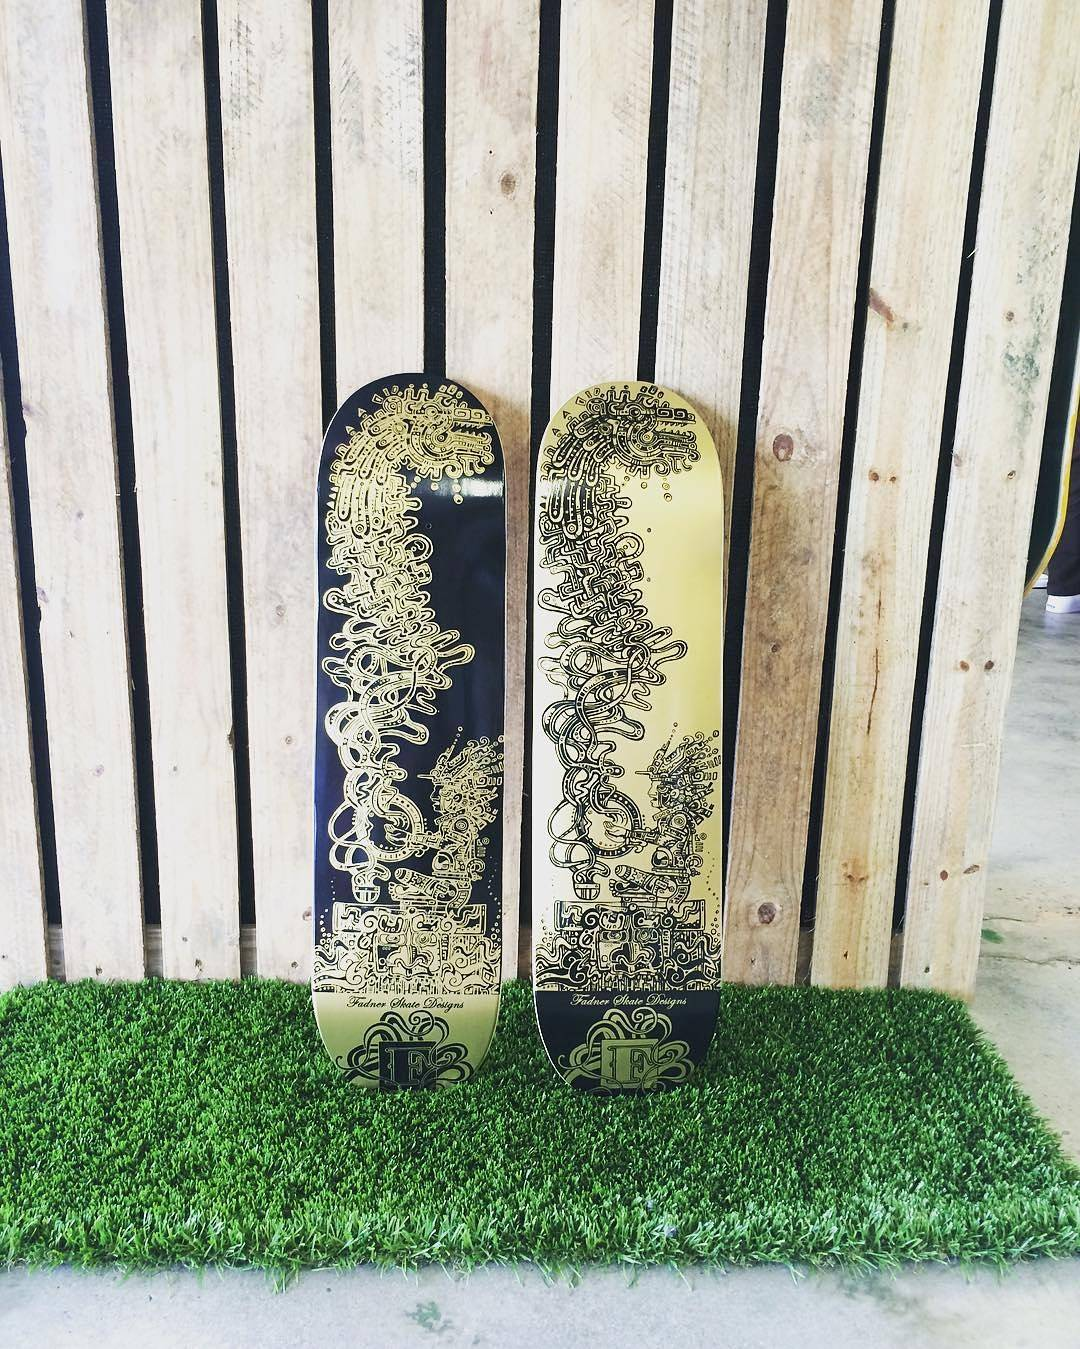 13732256 1238852149482975 1529866885 n - Check out the sweet graphics on @fadnerskatedesigns decks at fadnerskatedesigns....